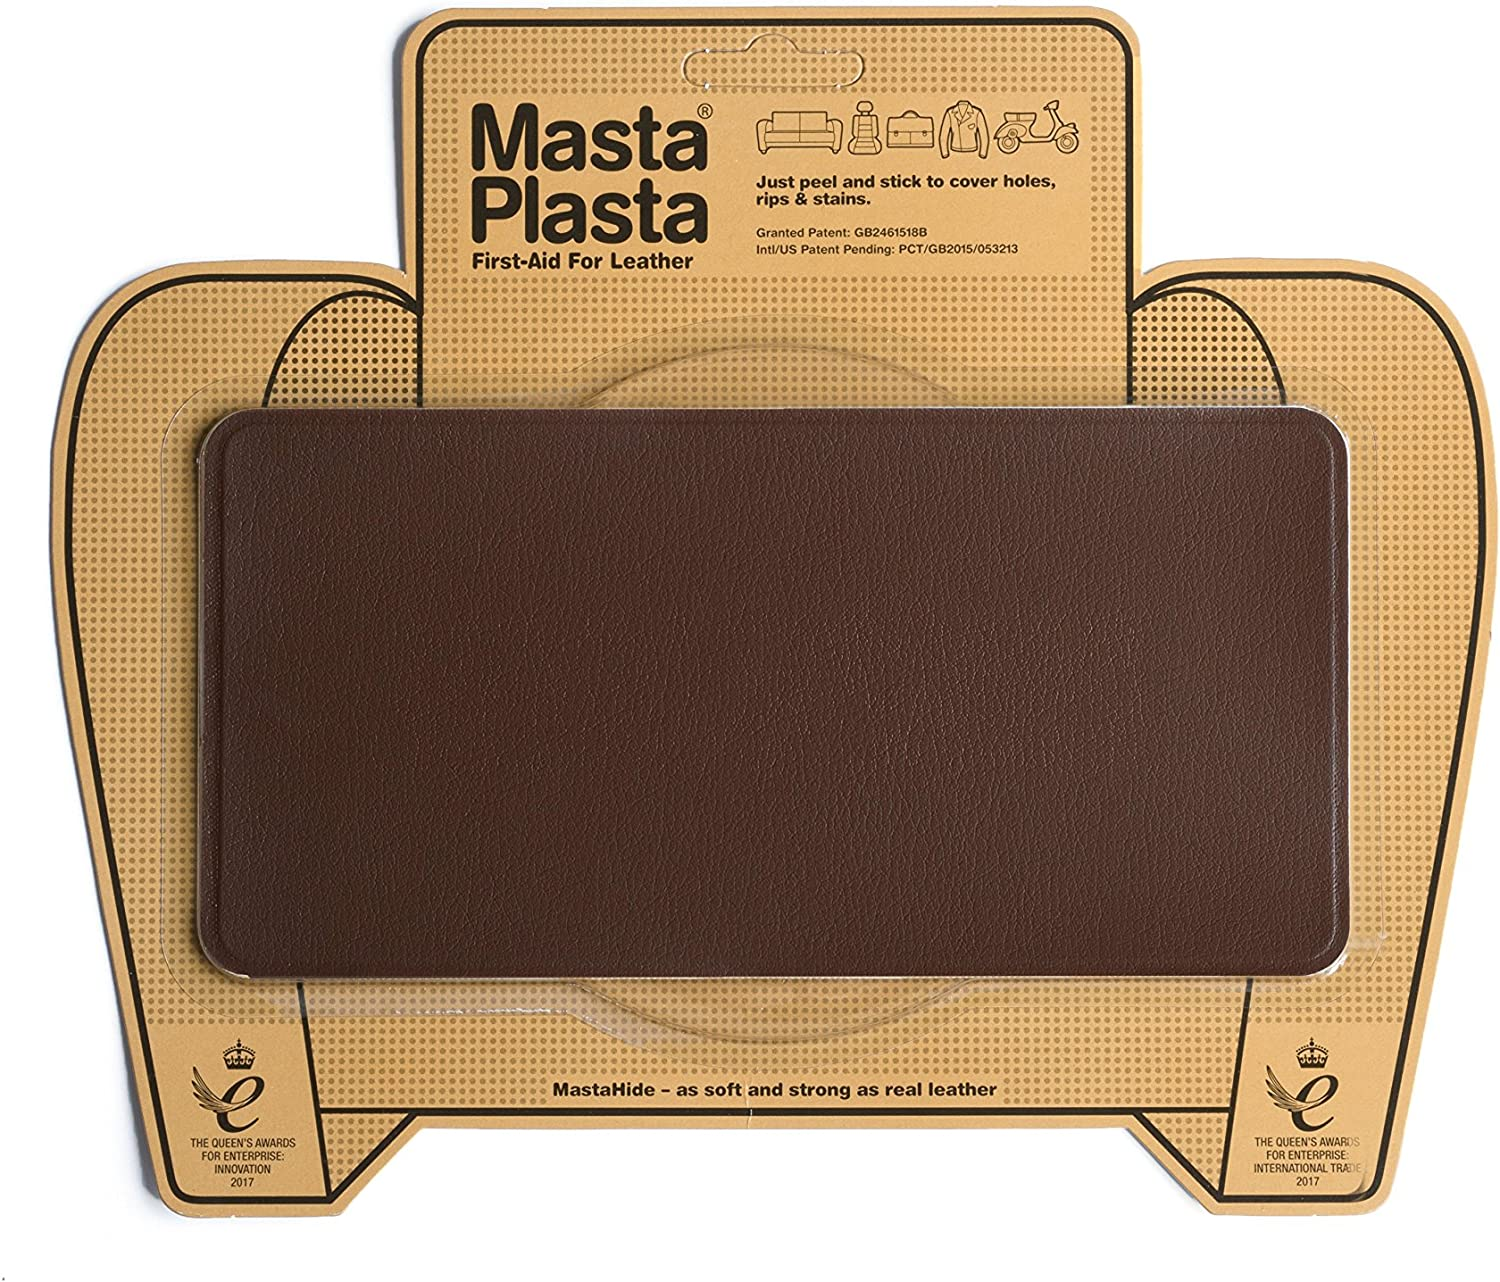 MastaPlasta Self-Adhesive Patch for Leather and Vinyl Repair, Large, Mid Brown - 8 x 4 Inch